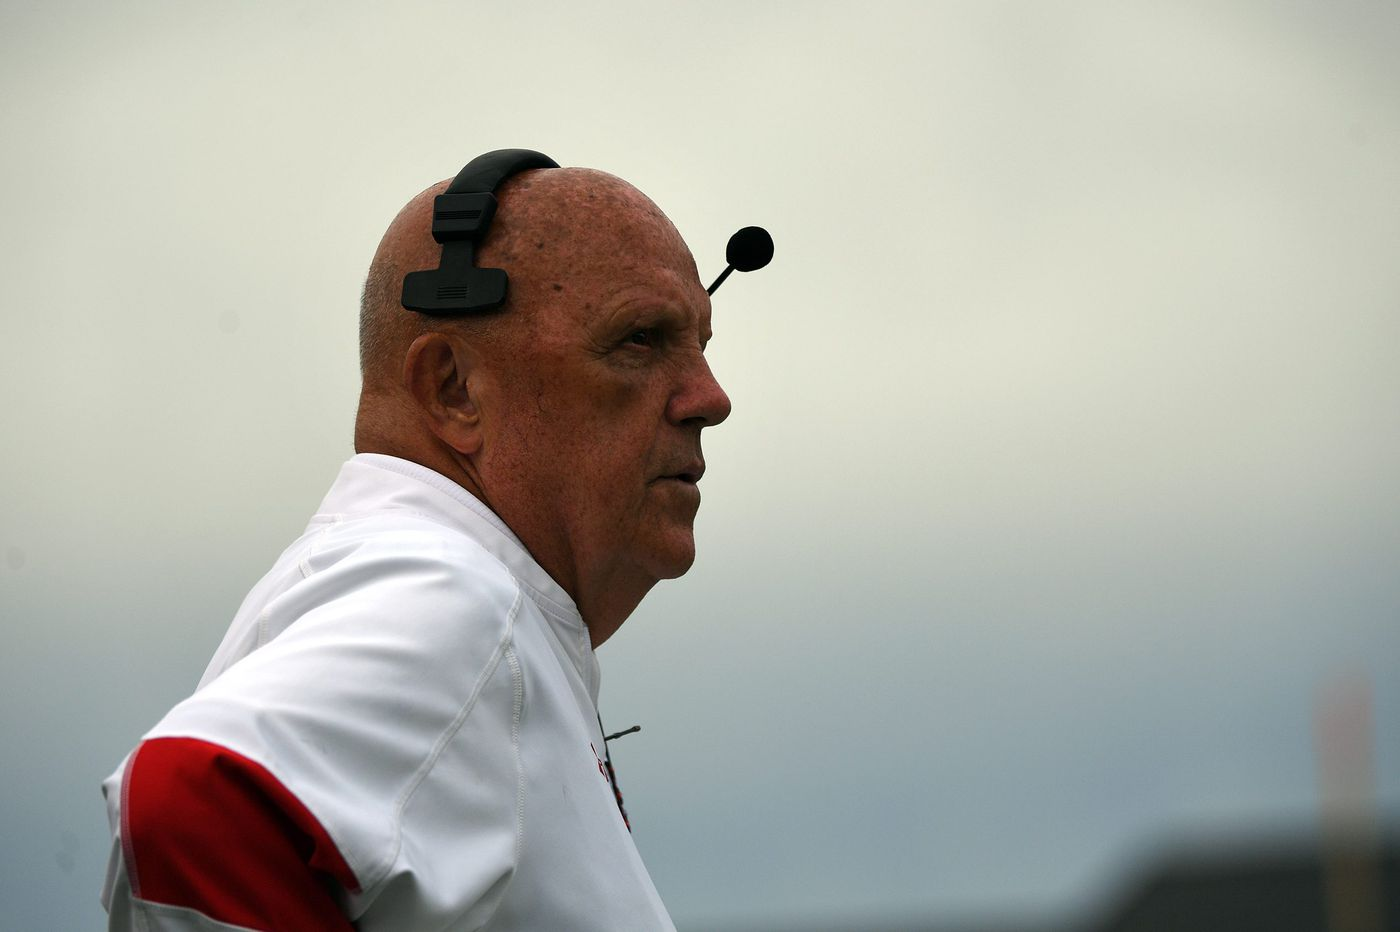 College football coach says goodbye after 45 years by calling a timeout and retiring during game